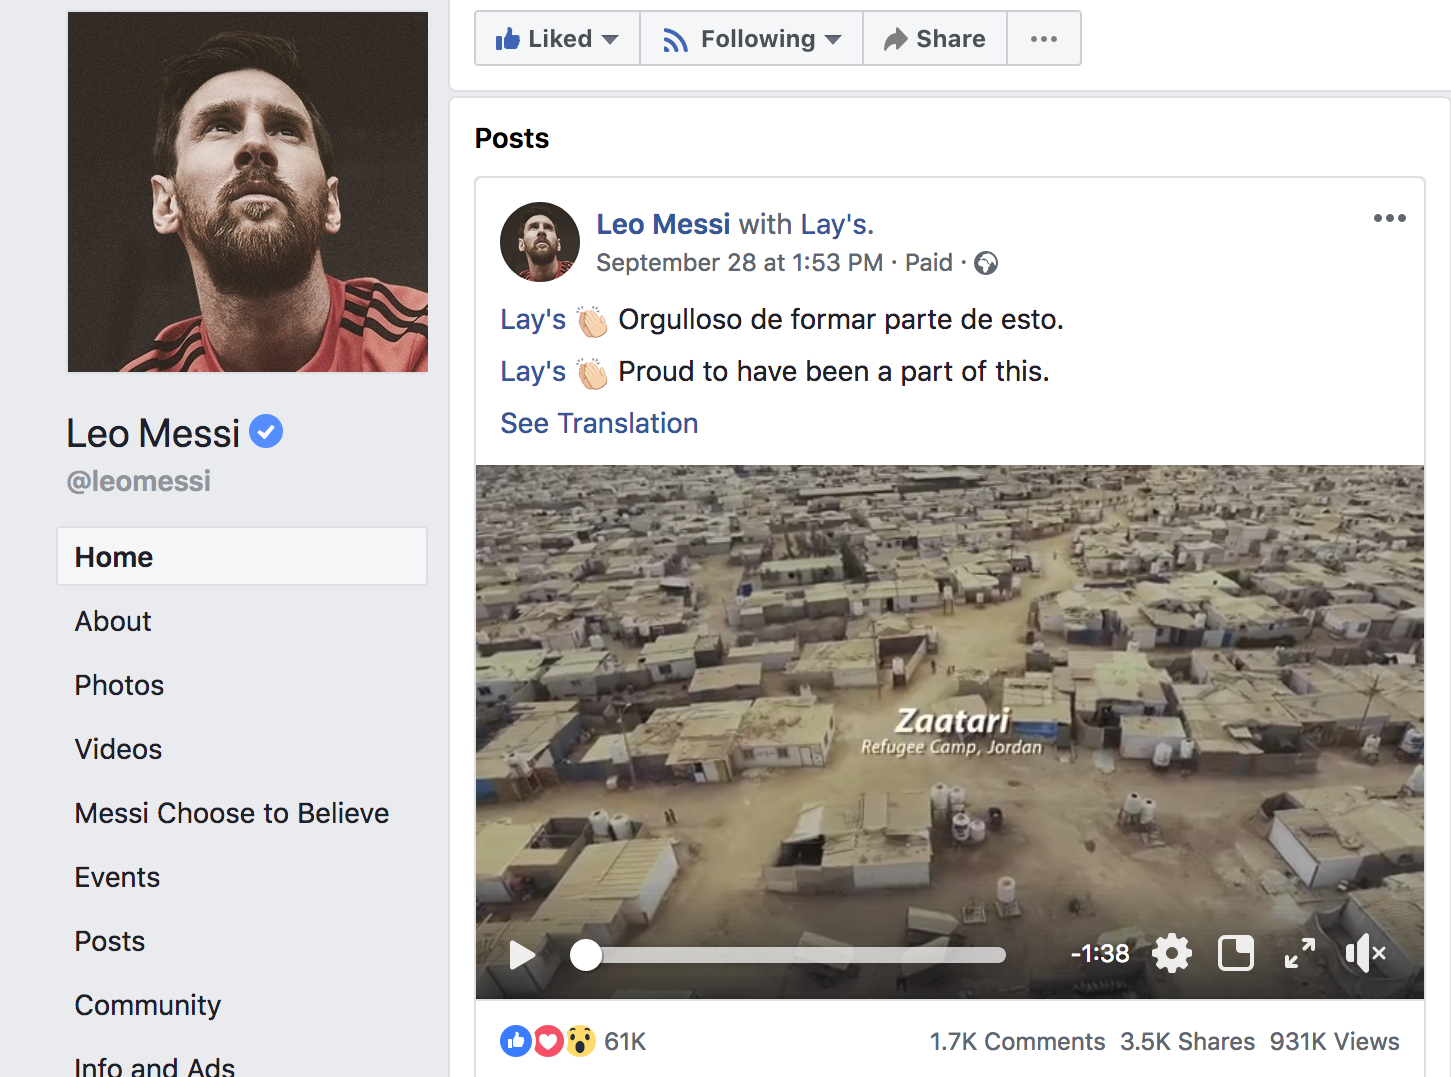 Collaborating with Living Legends - Worked with 5 time Ballon D'or winner Leo Messi, in supporting and encouraging young girls in the Za'atari Refugee Camp to continue playing football.